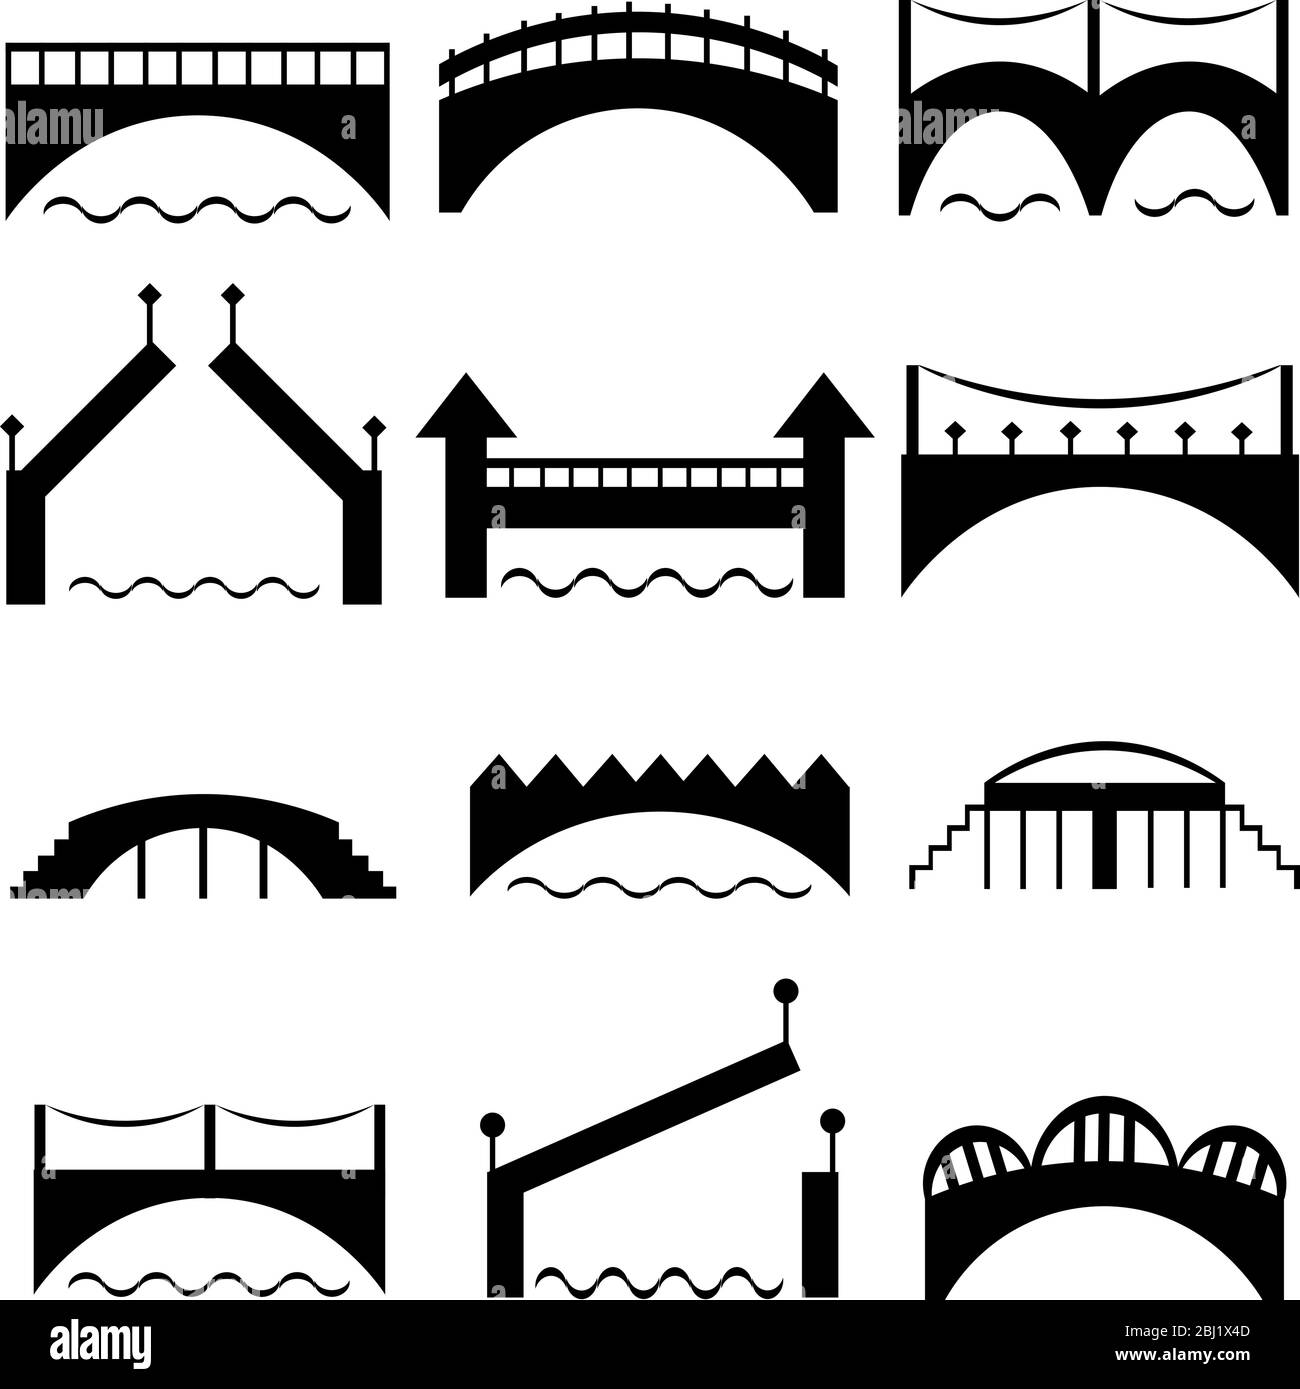 a set of black bridge silhouettes modern and retro architecture road across the river vector icons stock vector image art alamy alamy